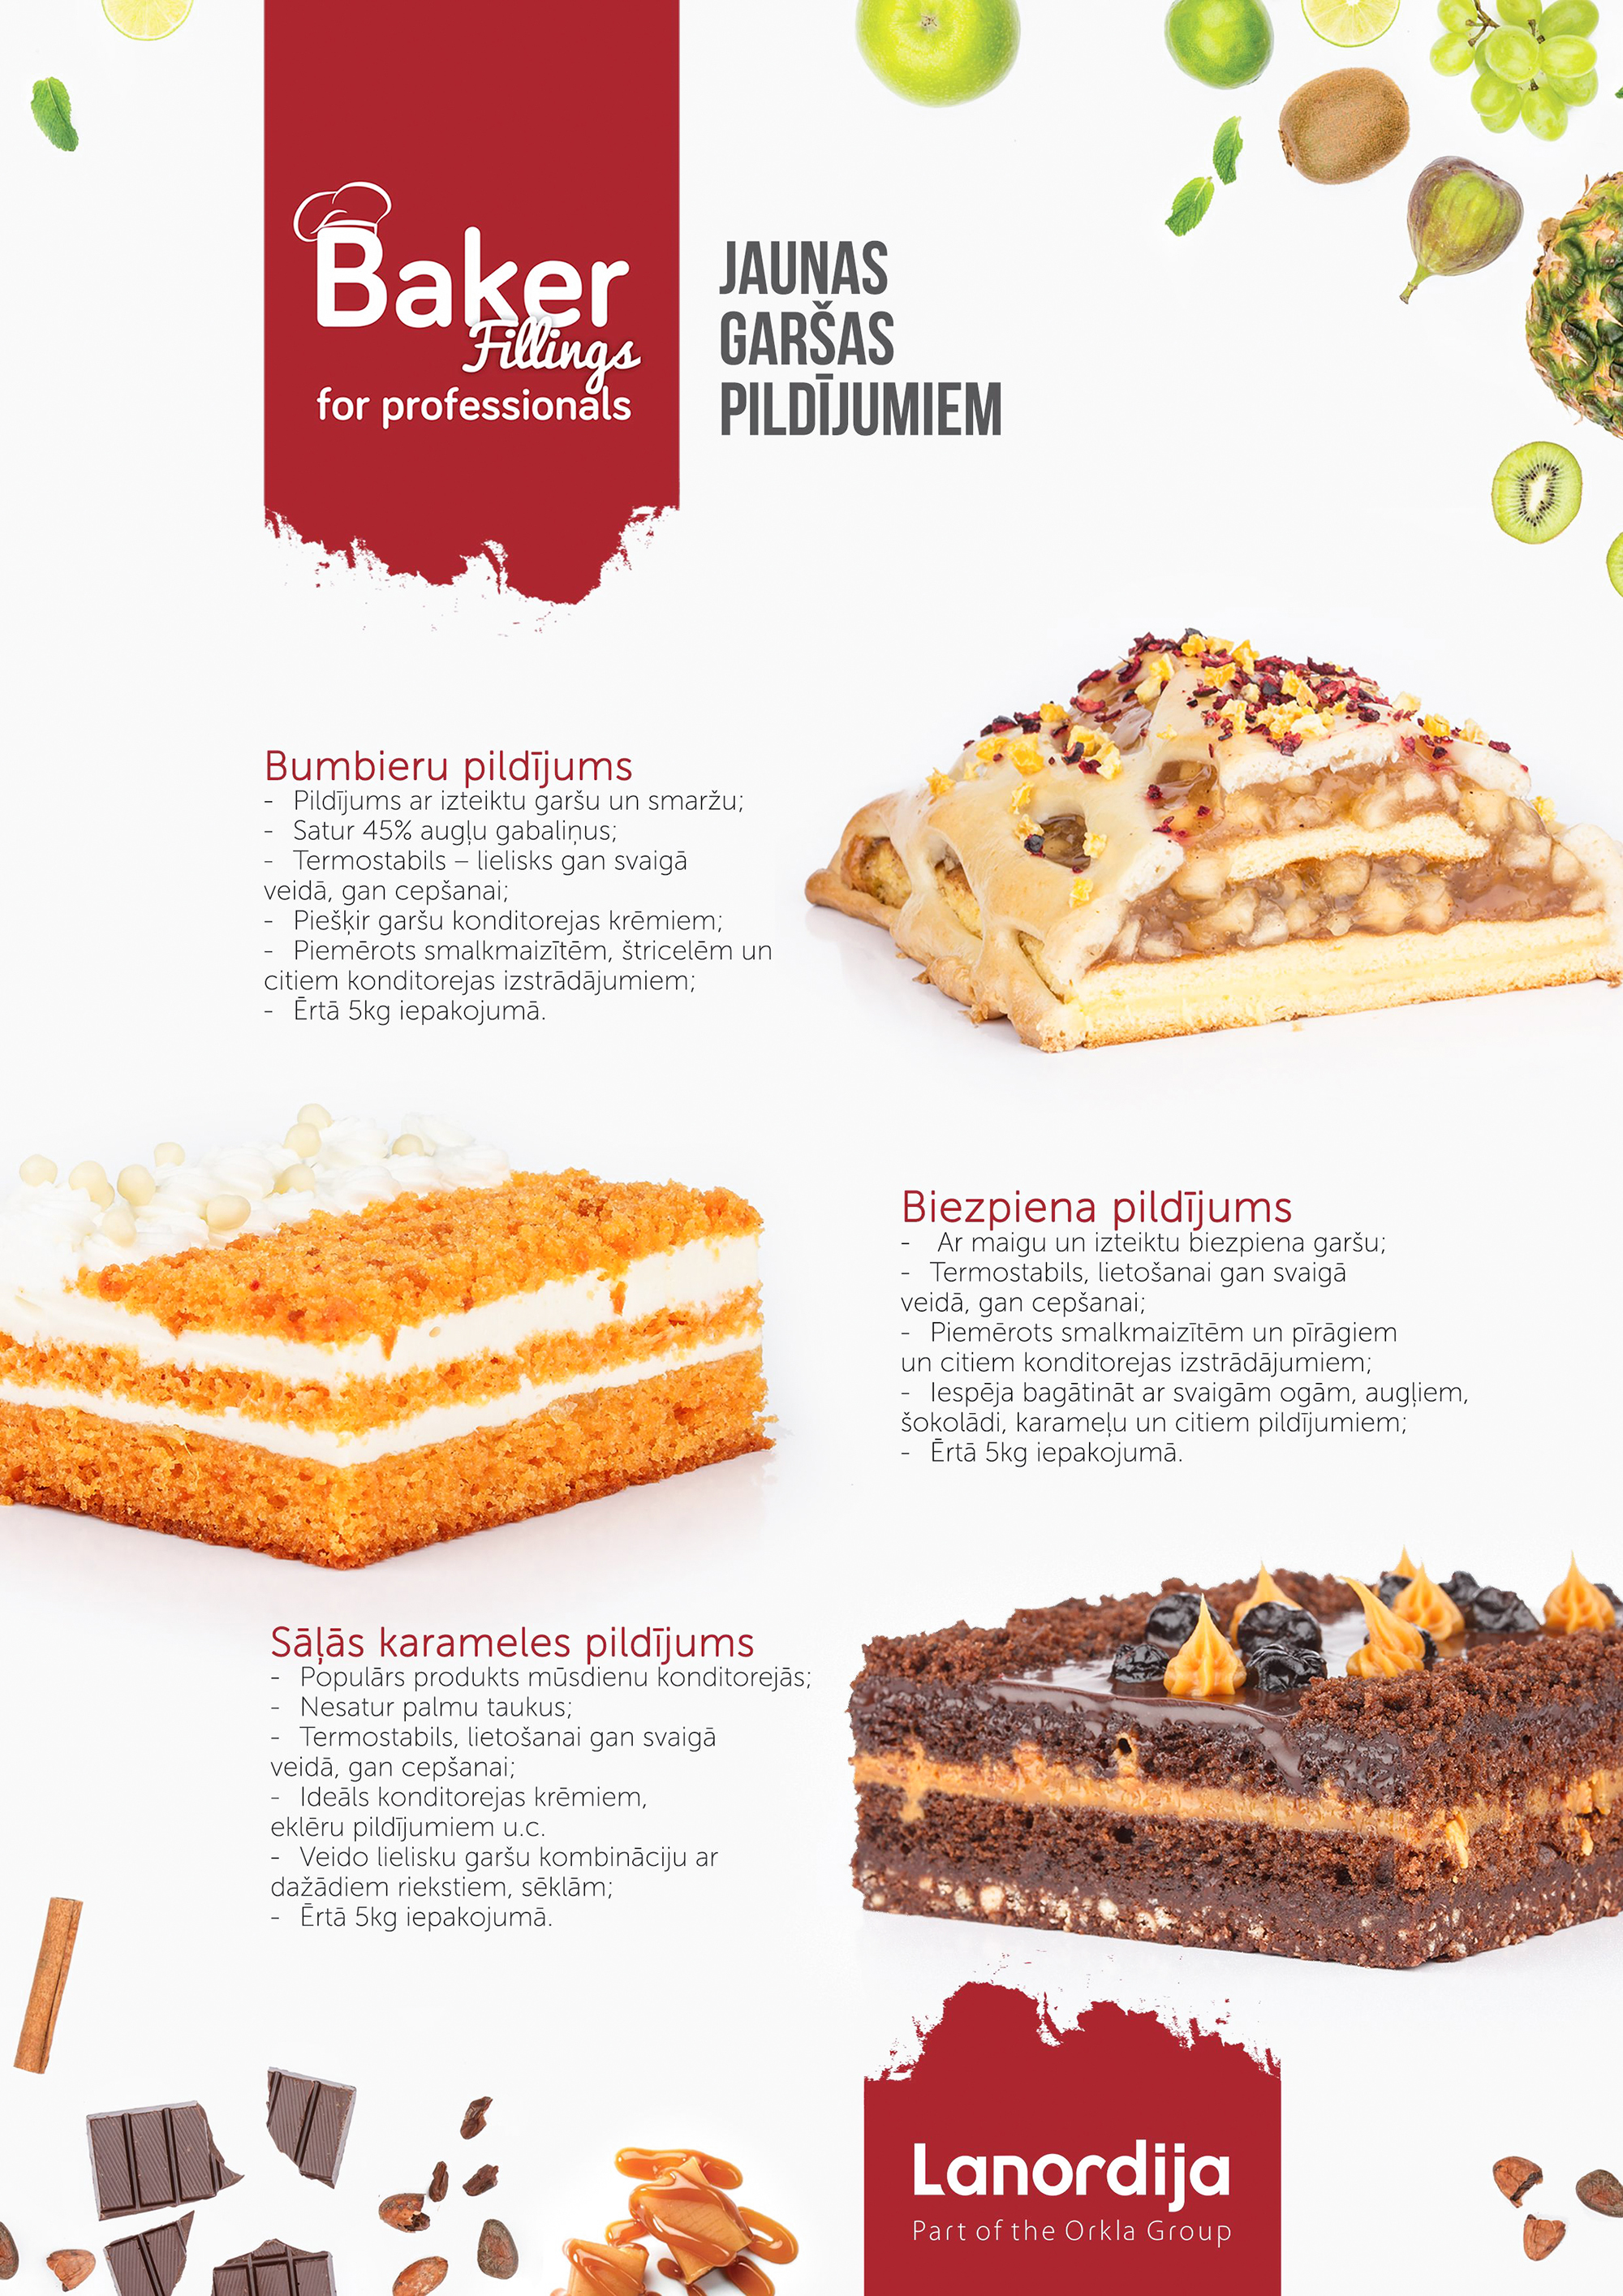 new-18-baker-fillings-lanordija